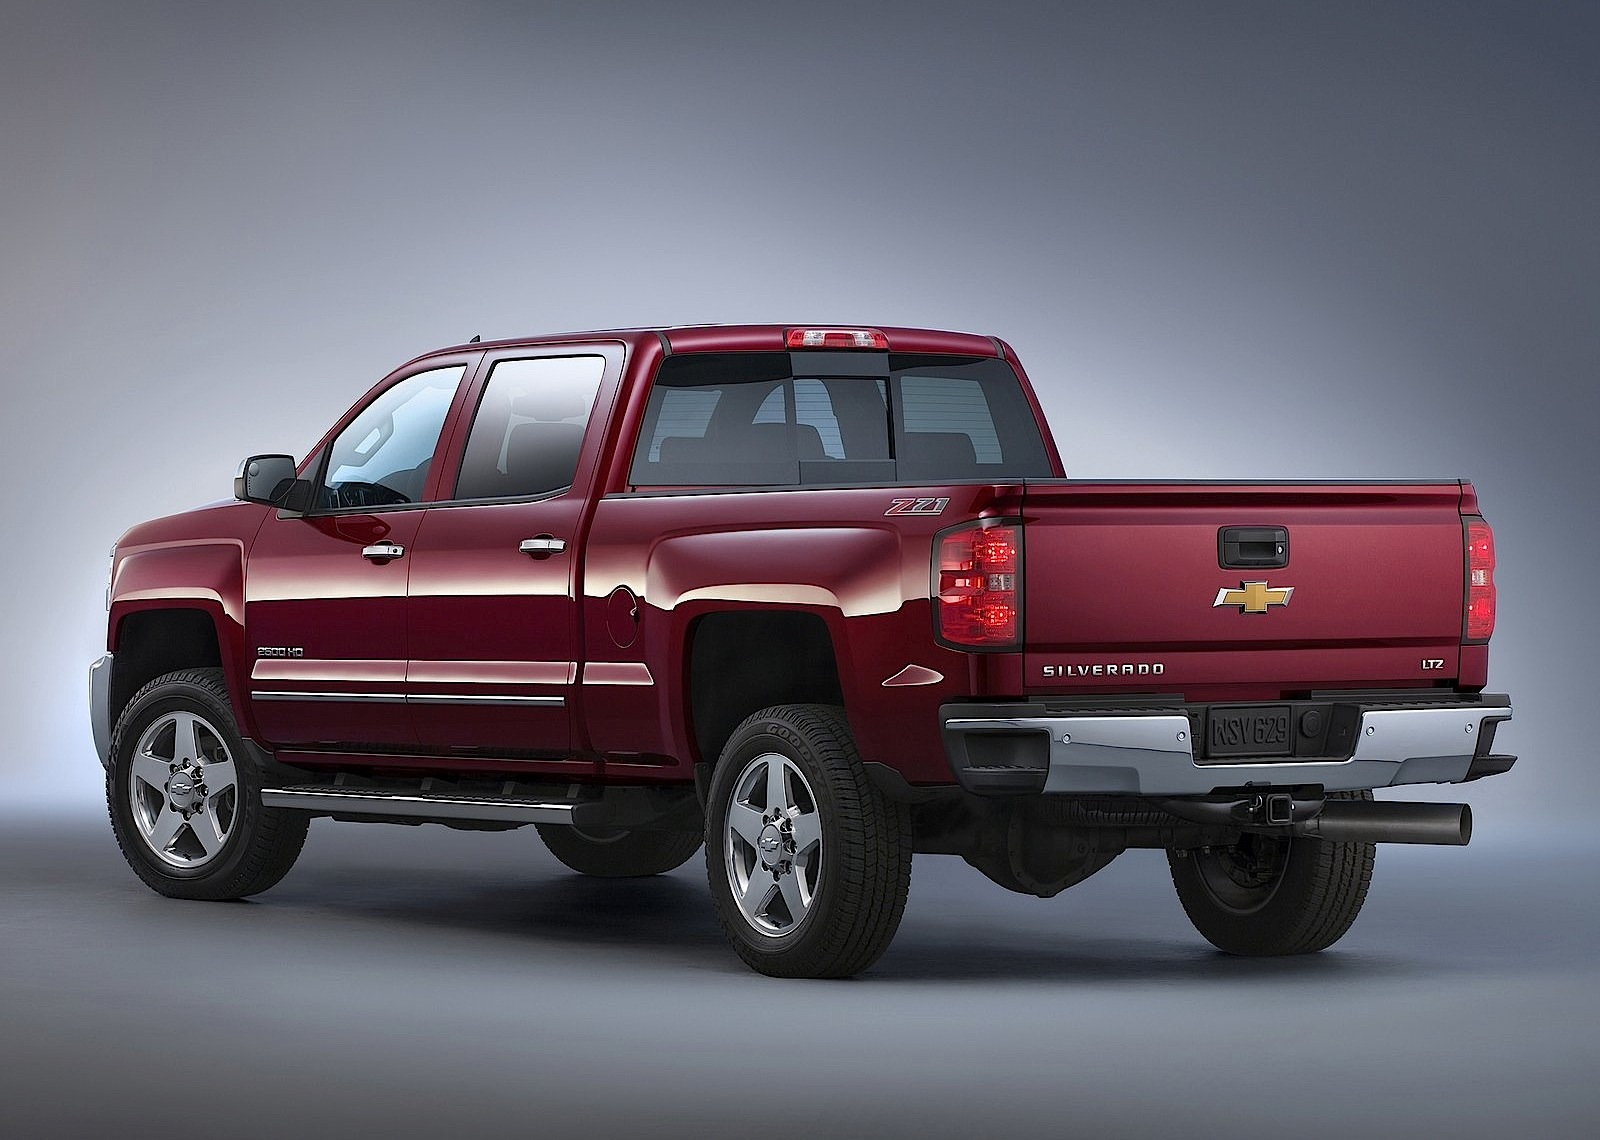 Chevrolet Silverado 3500 Hd Crew Cab Specs Amp Photos 2013